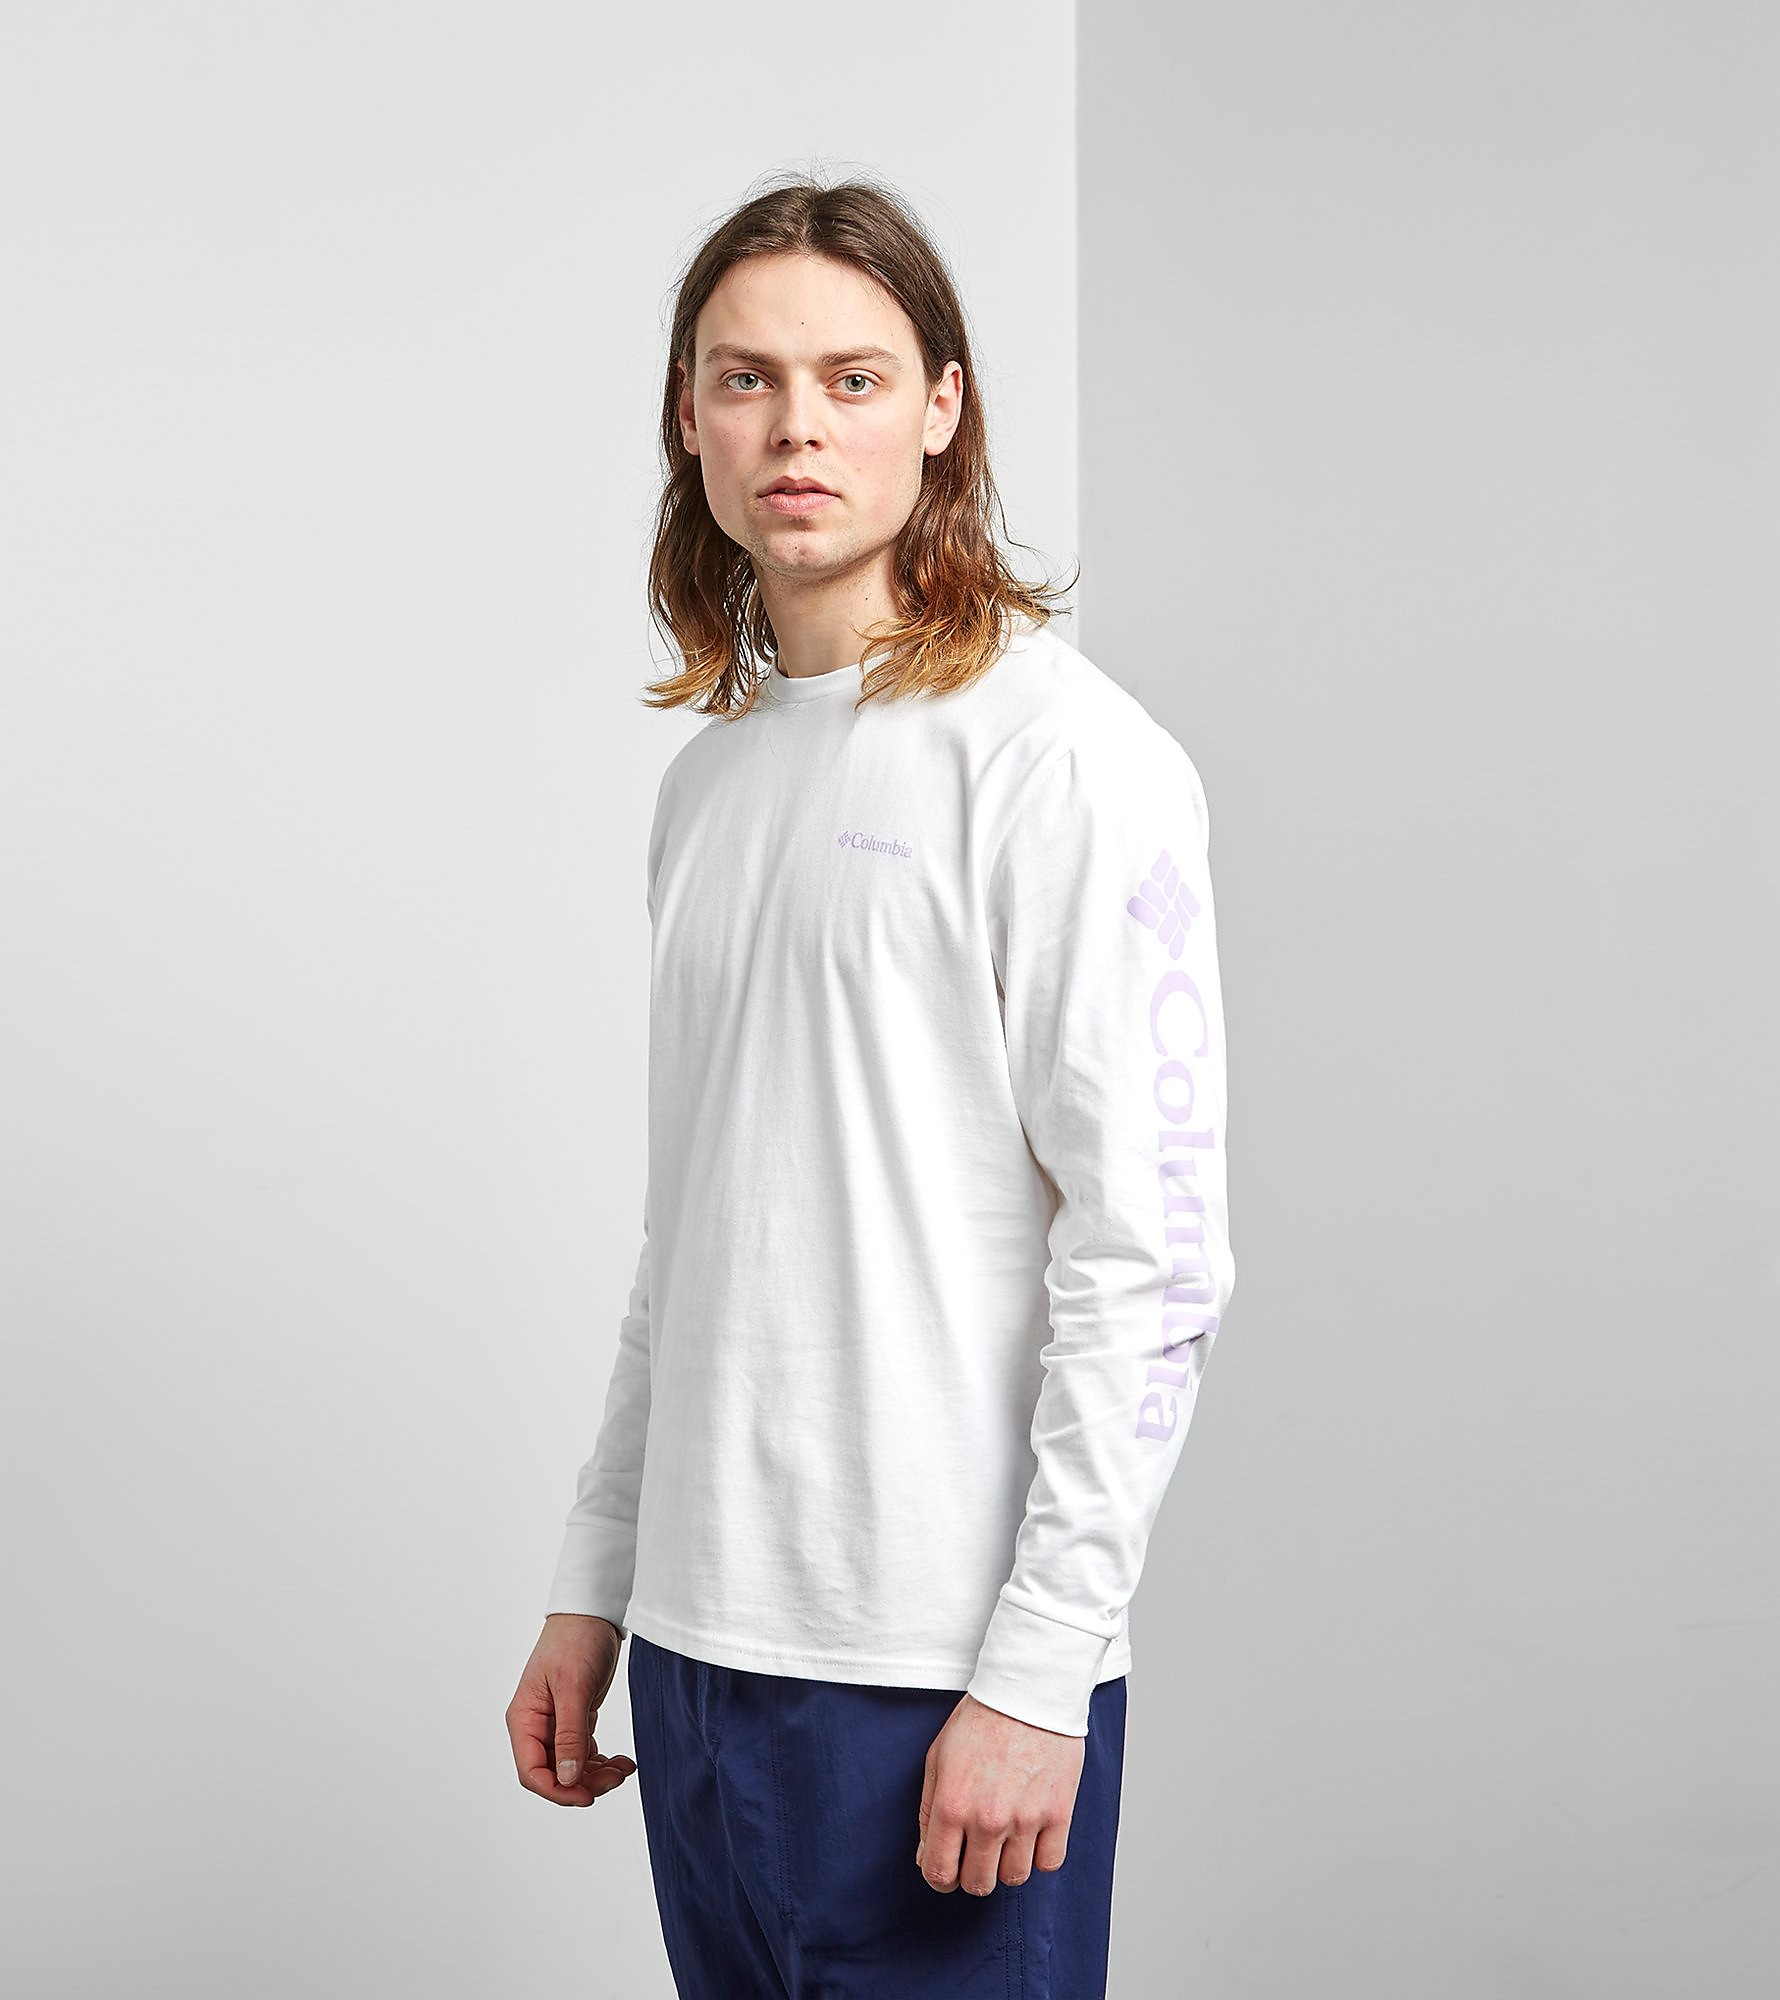 Columbia Long Sleeved T-Shirt - size? Exclusive